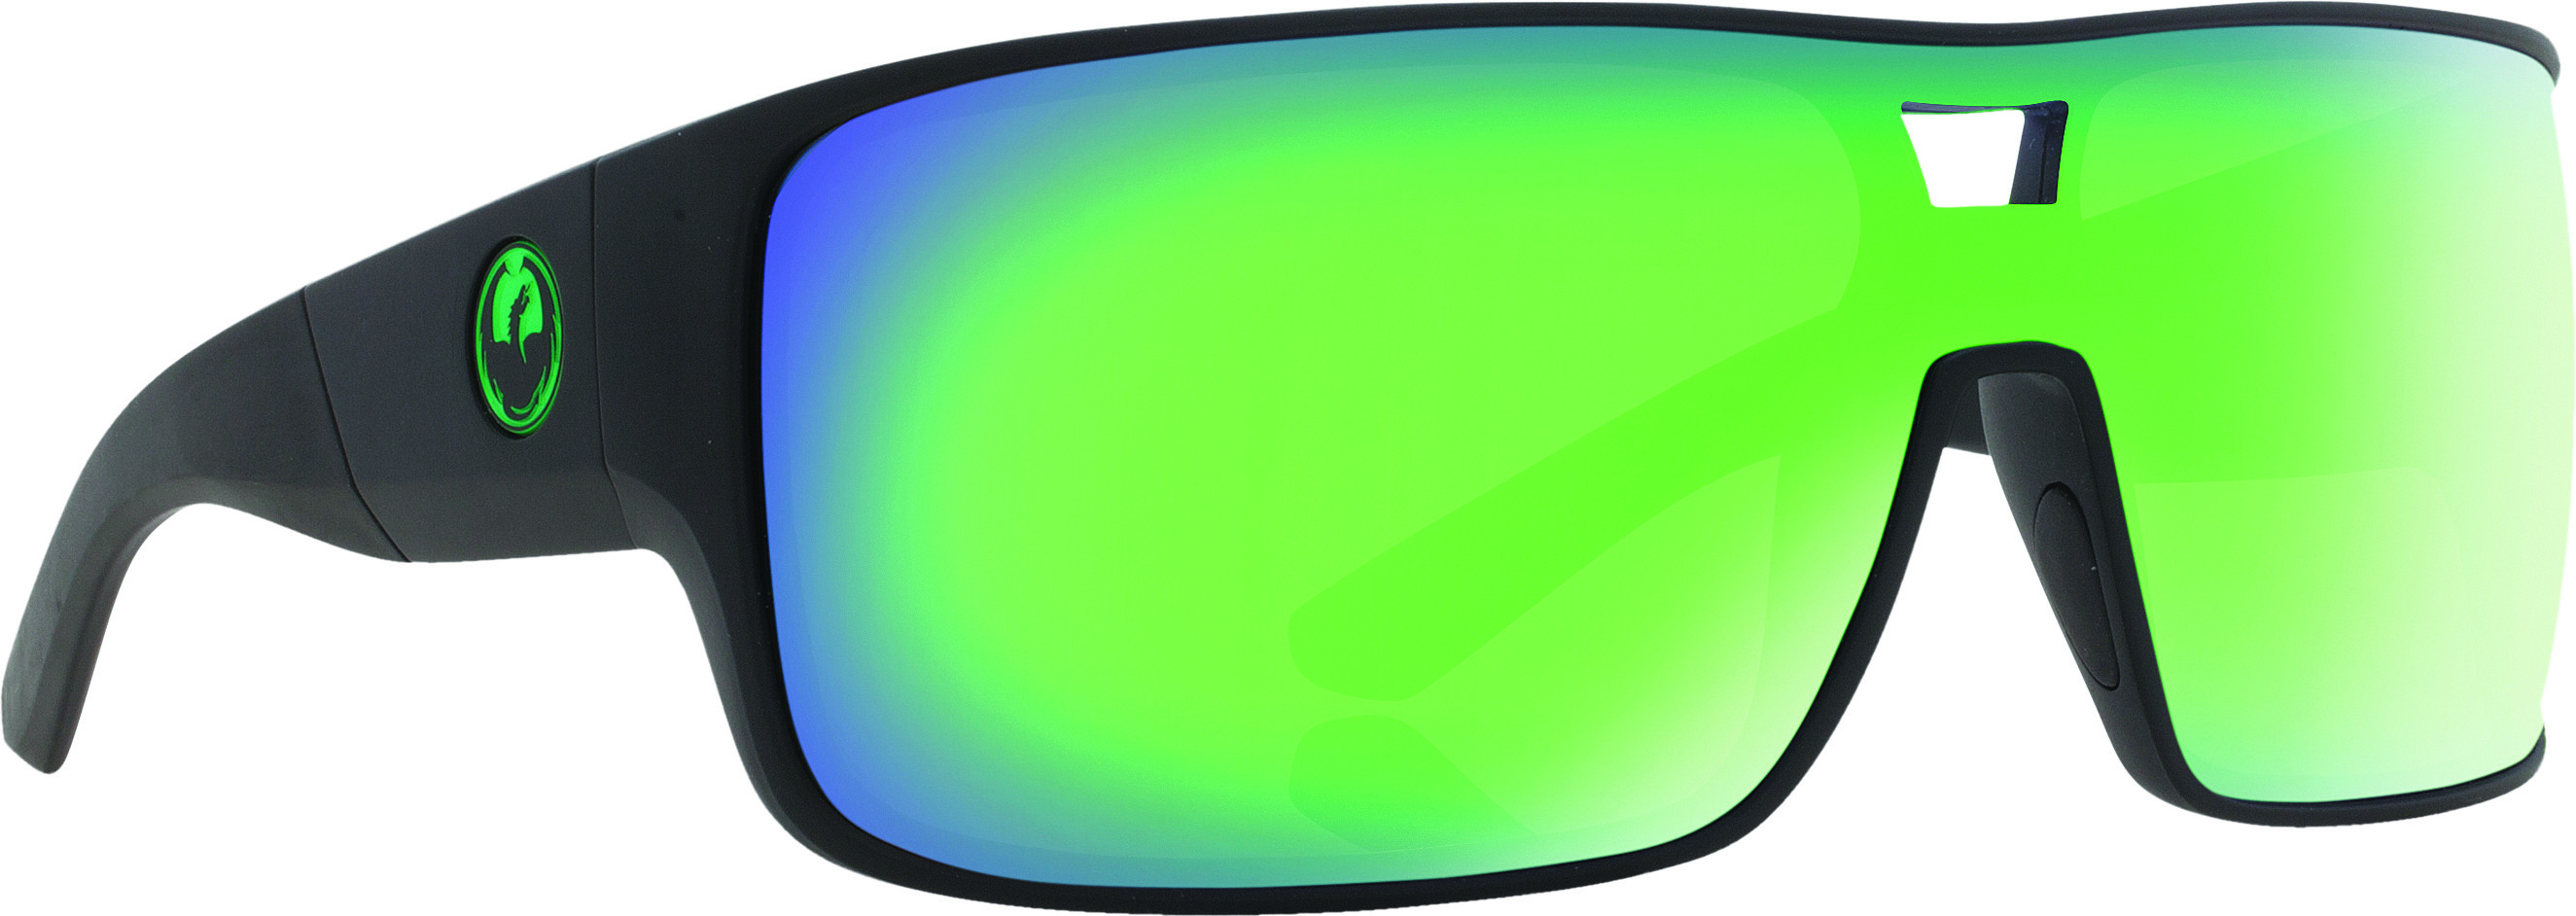 7326eef755 Hex Sunglasses Matte Black, with Green Ion Lens